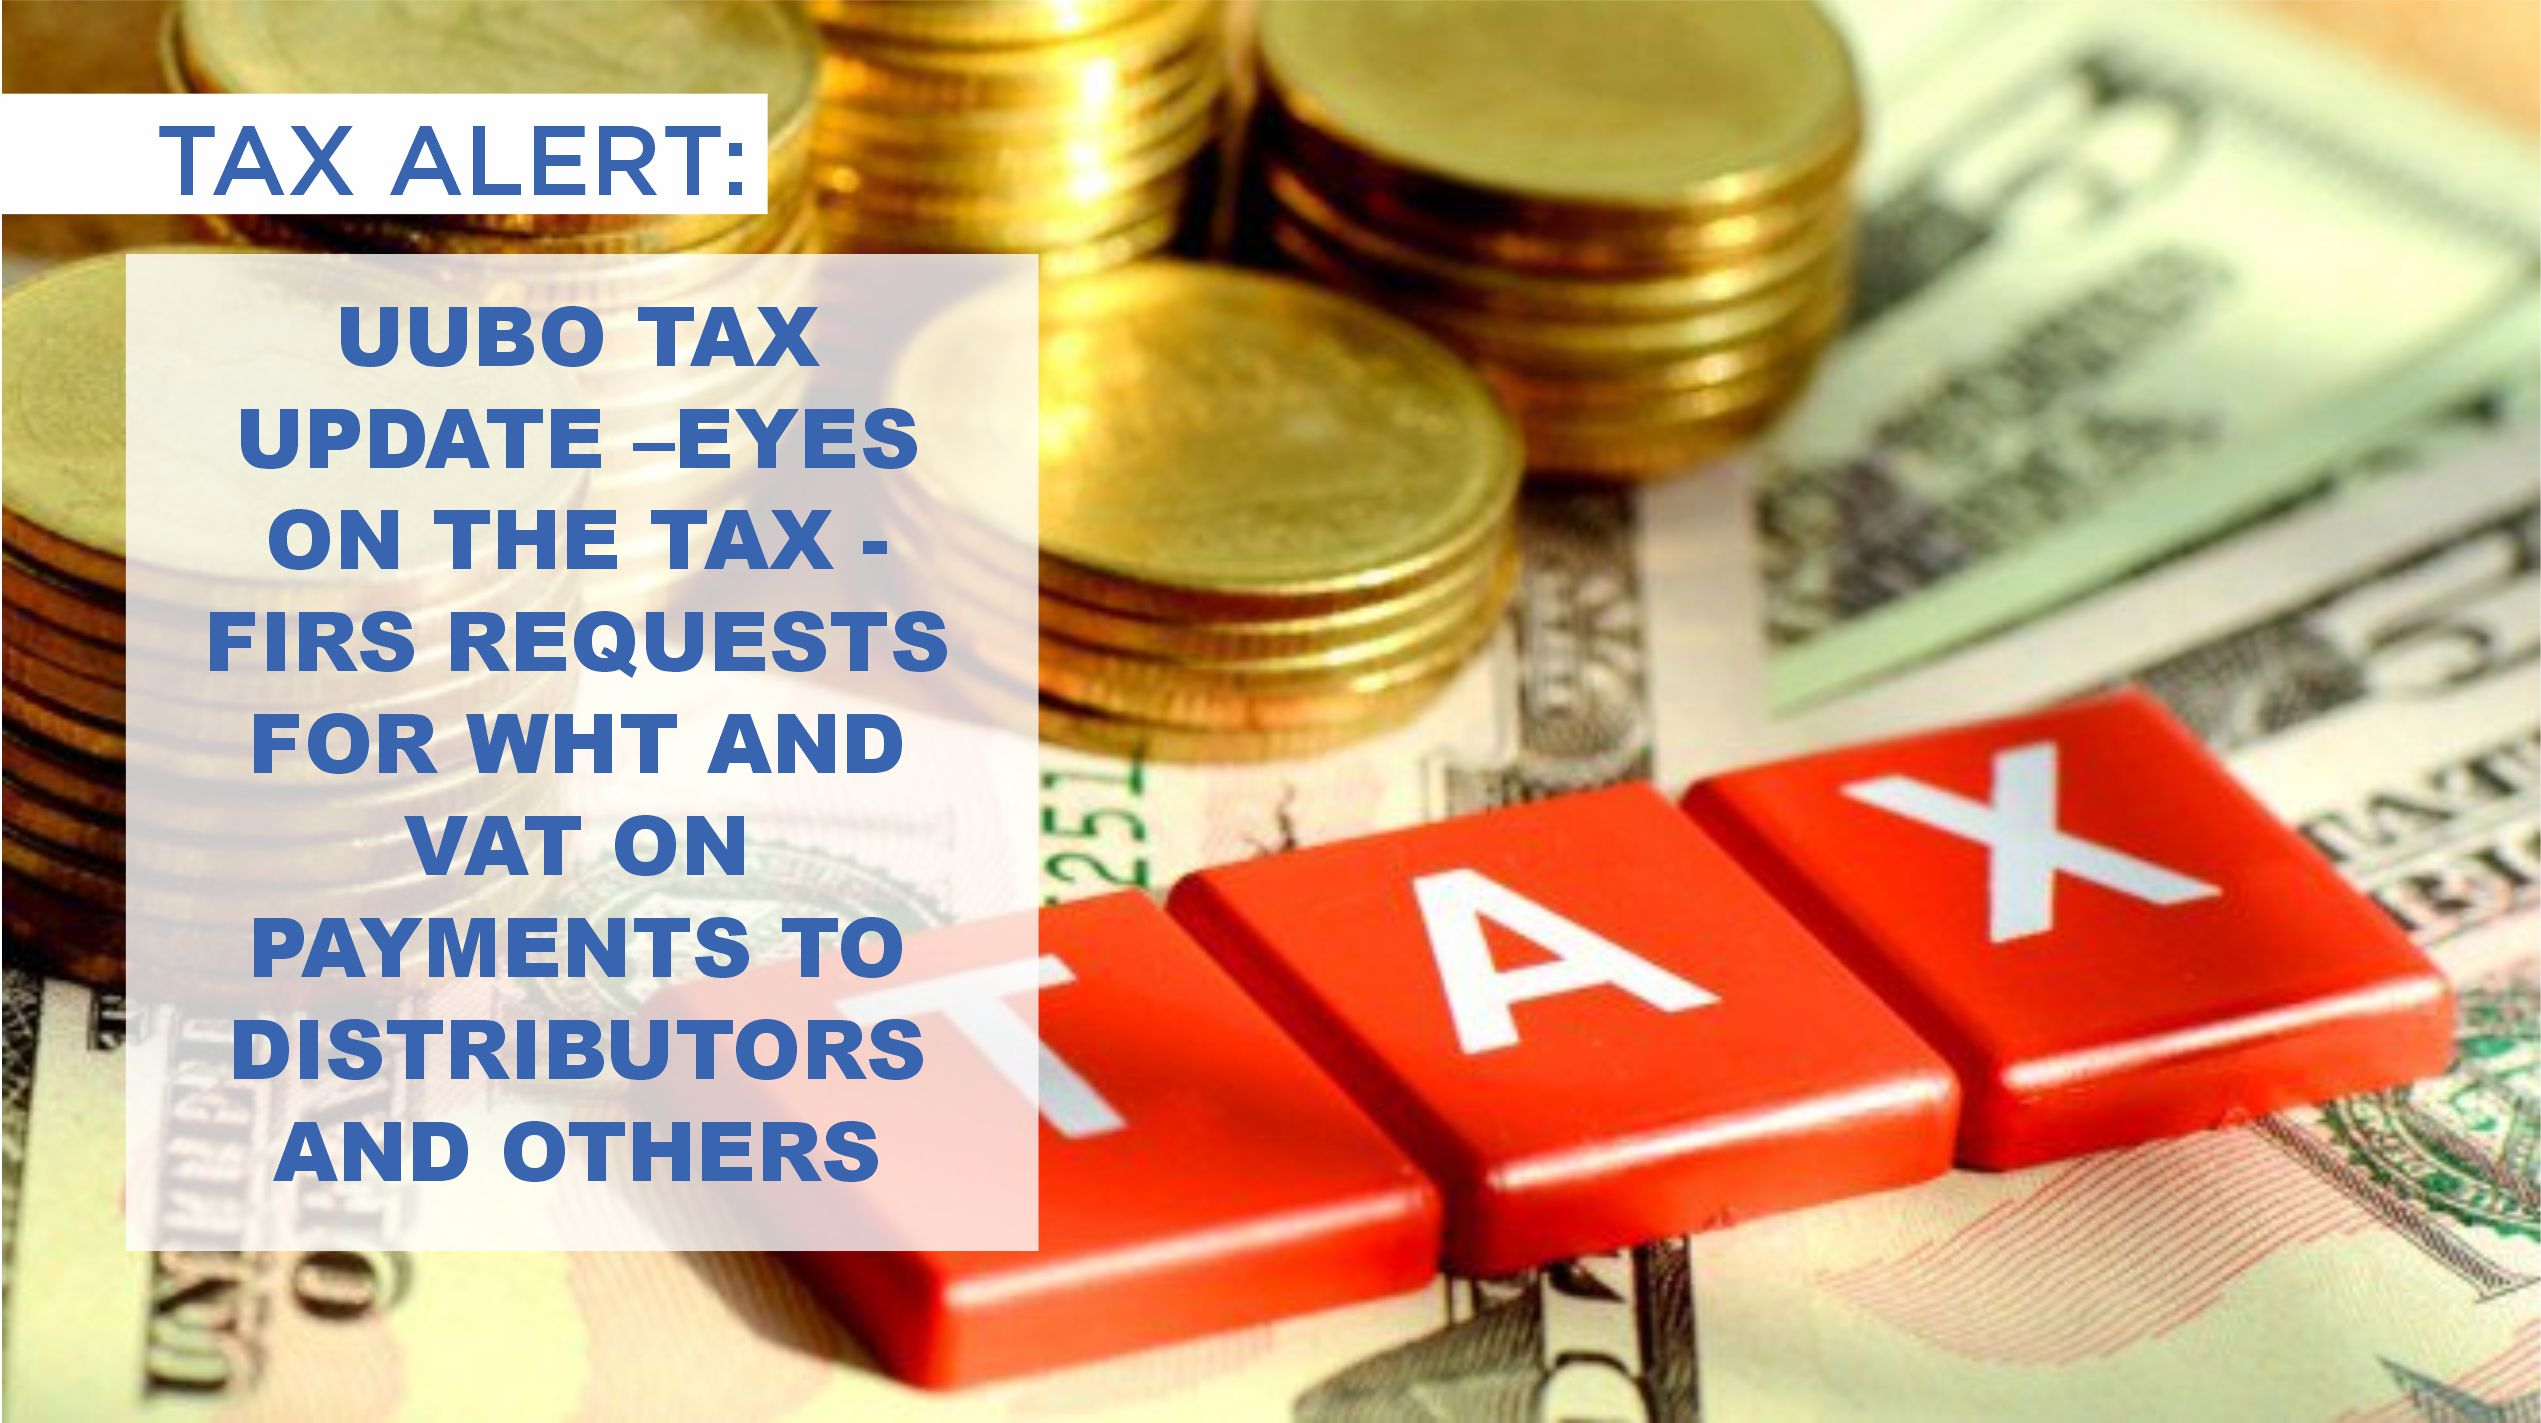 Eyes on the Tax - FIRS Requests for WHT and VAT on Payments to Distributors and Others